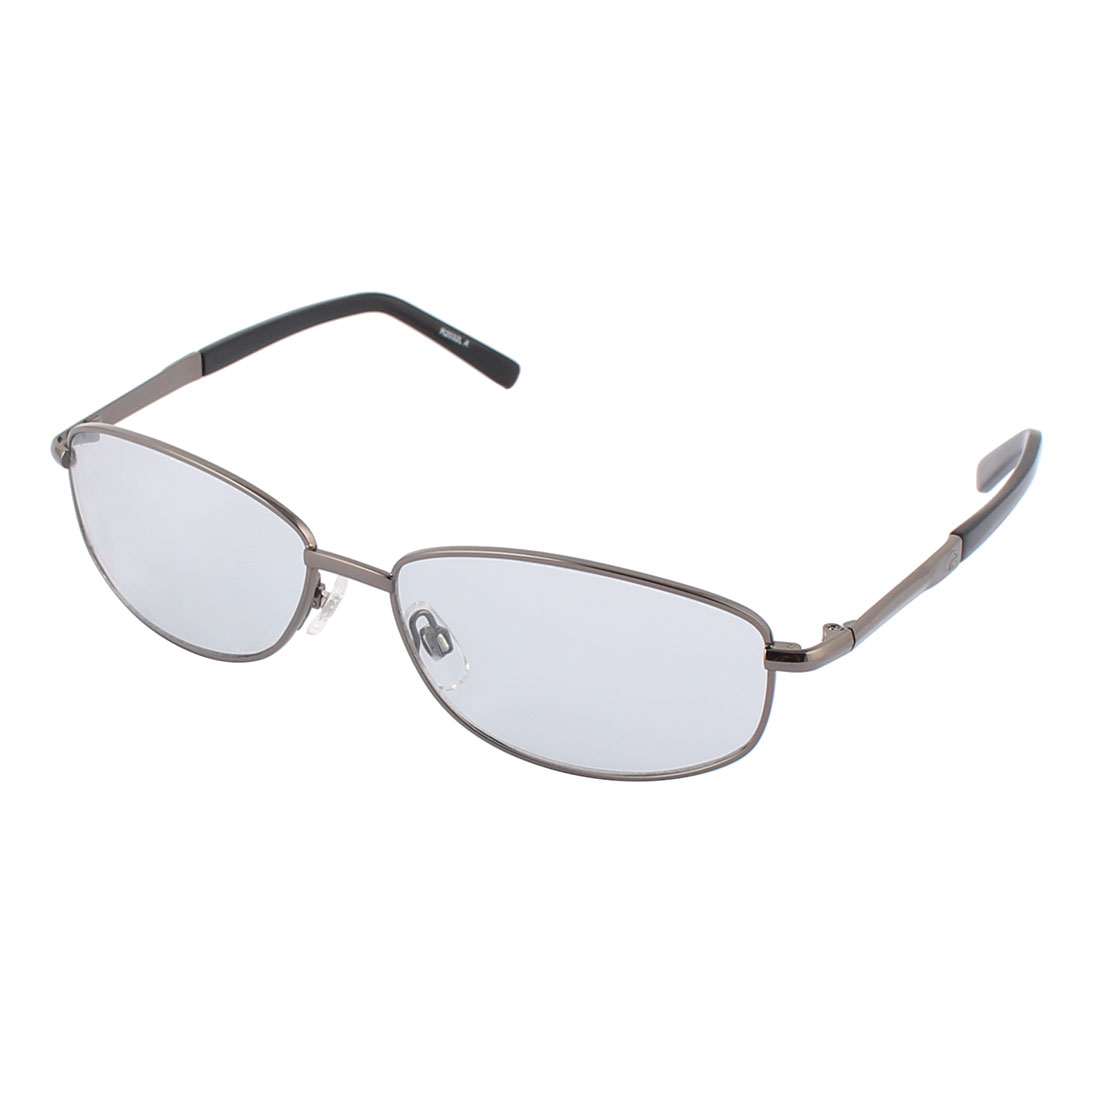 Men Metal Round Full Rim Flame Thin Temple Sun Shield Clear Lens Sunglass Gray